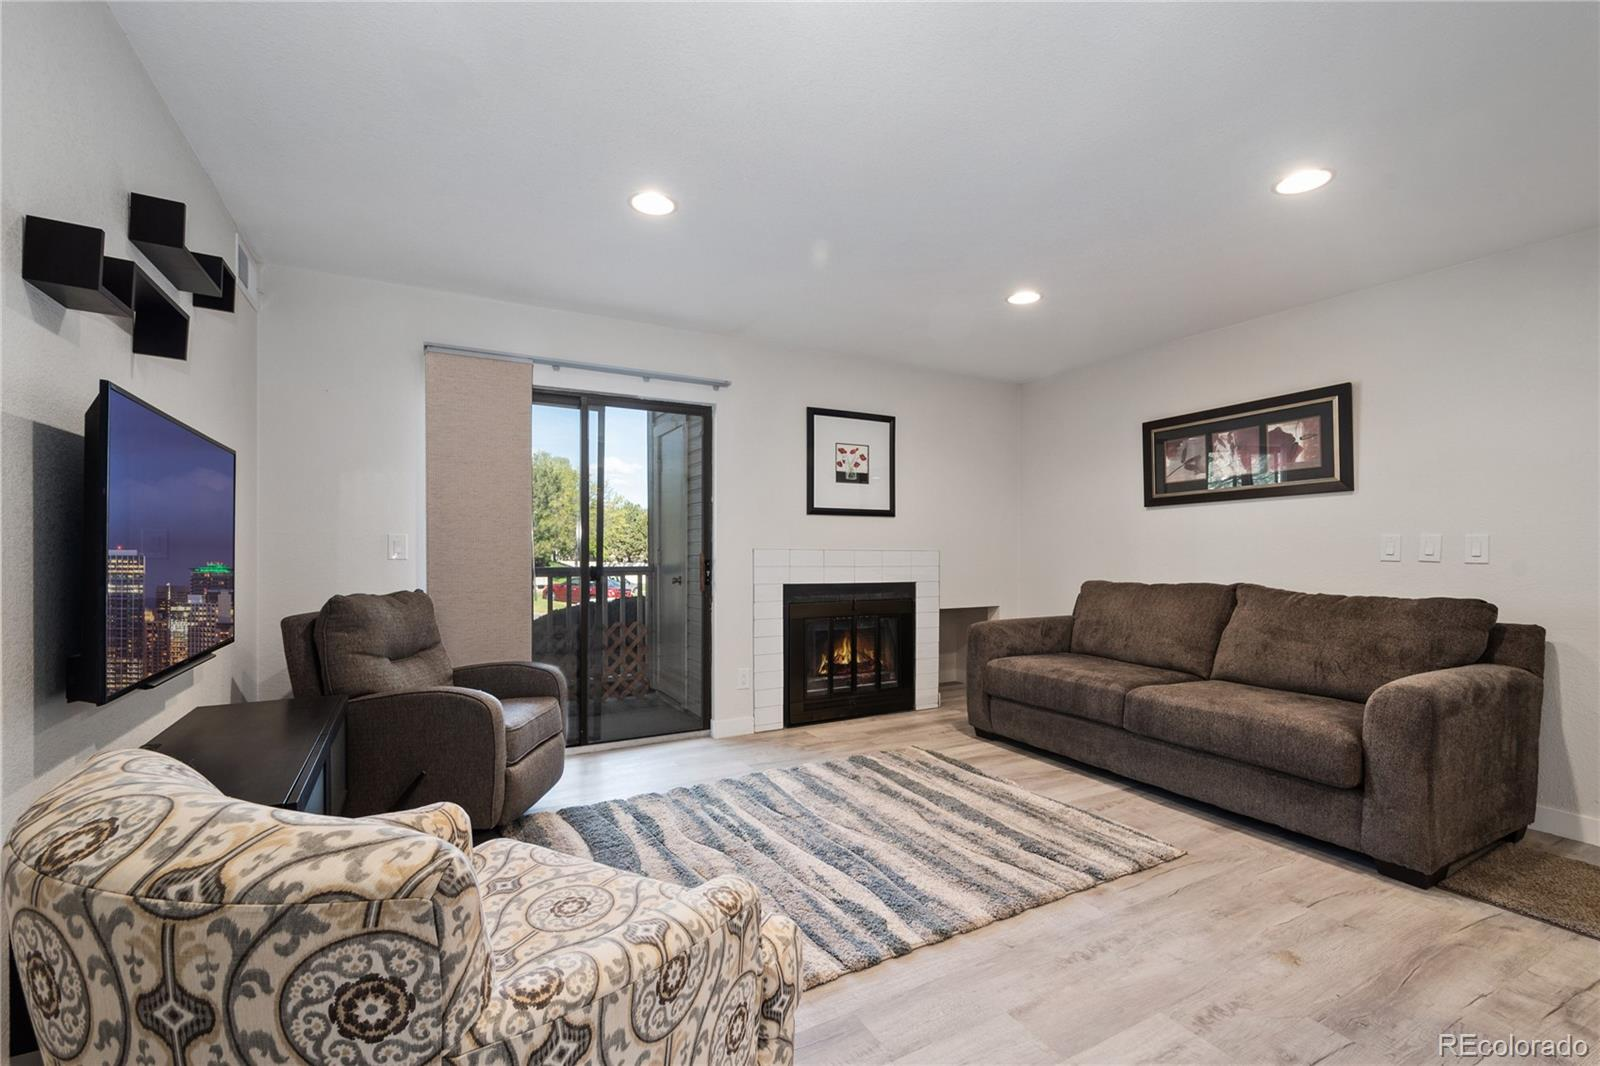 MLS# 7942080 - 6 - 9680 Brentwood Way #101, Westminster, CO 80021